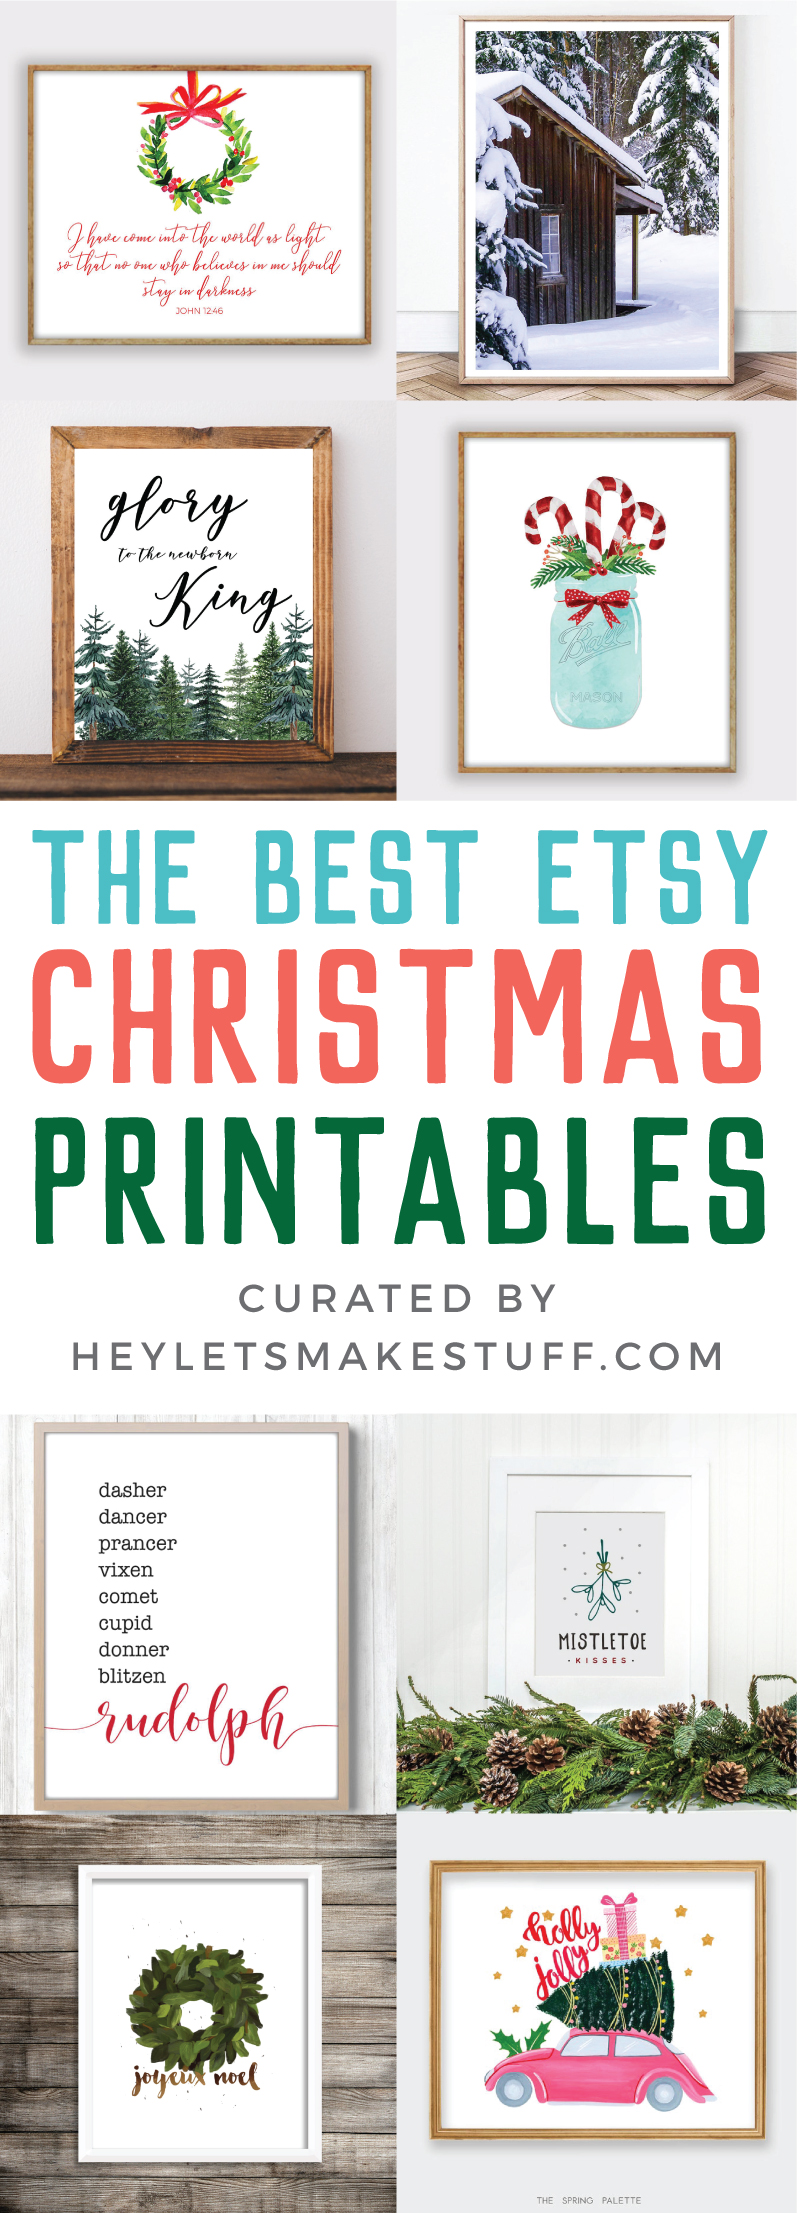 Etsy is the perfect place to find all styles of Christmas printables! I've rounded up some of my favorites—all under $10. Perfect for home decor, classrooms, invitations, and more.  via @heyletsmakestuf